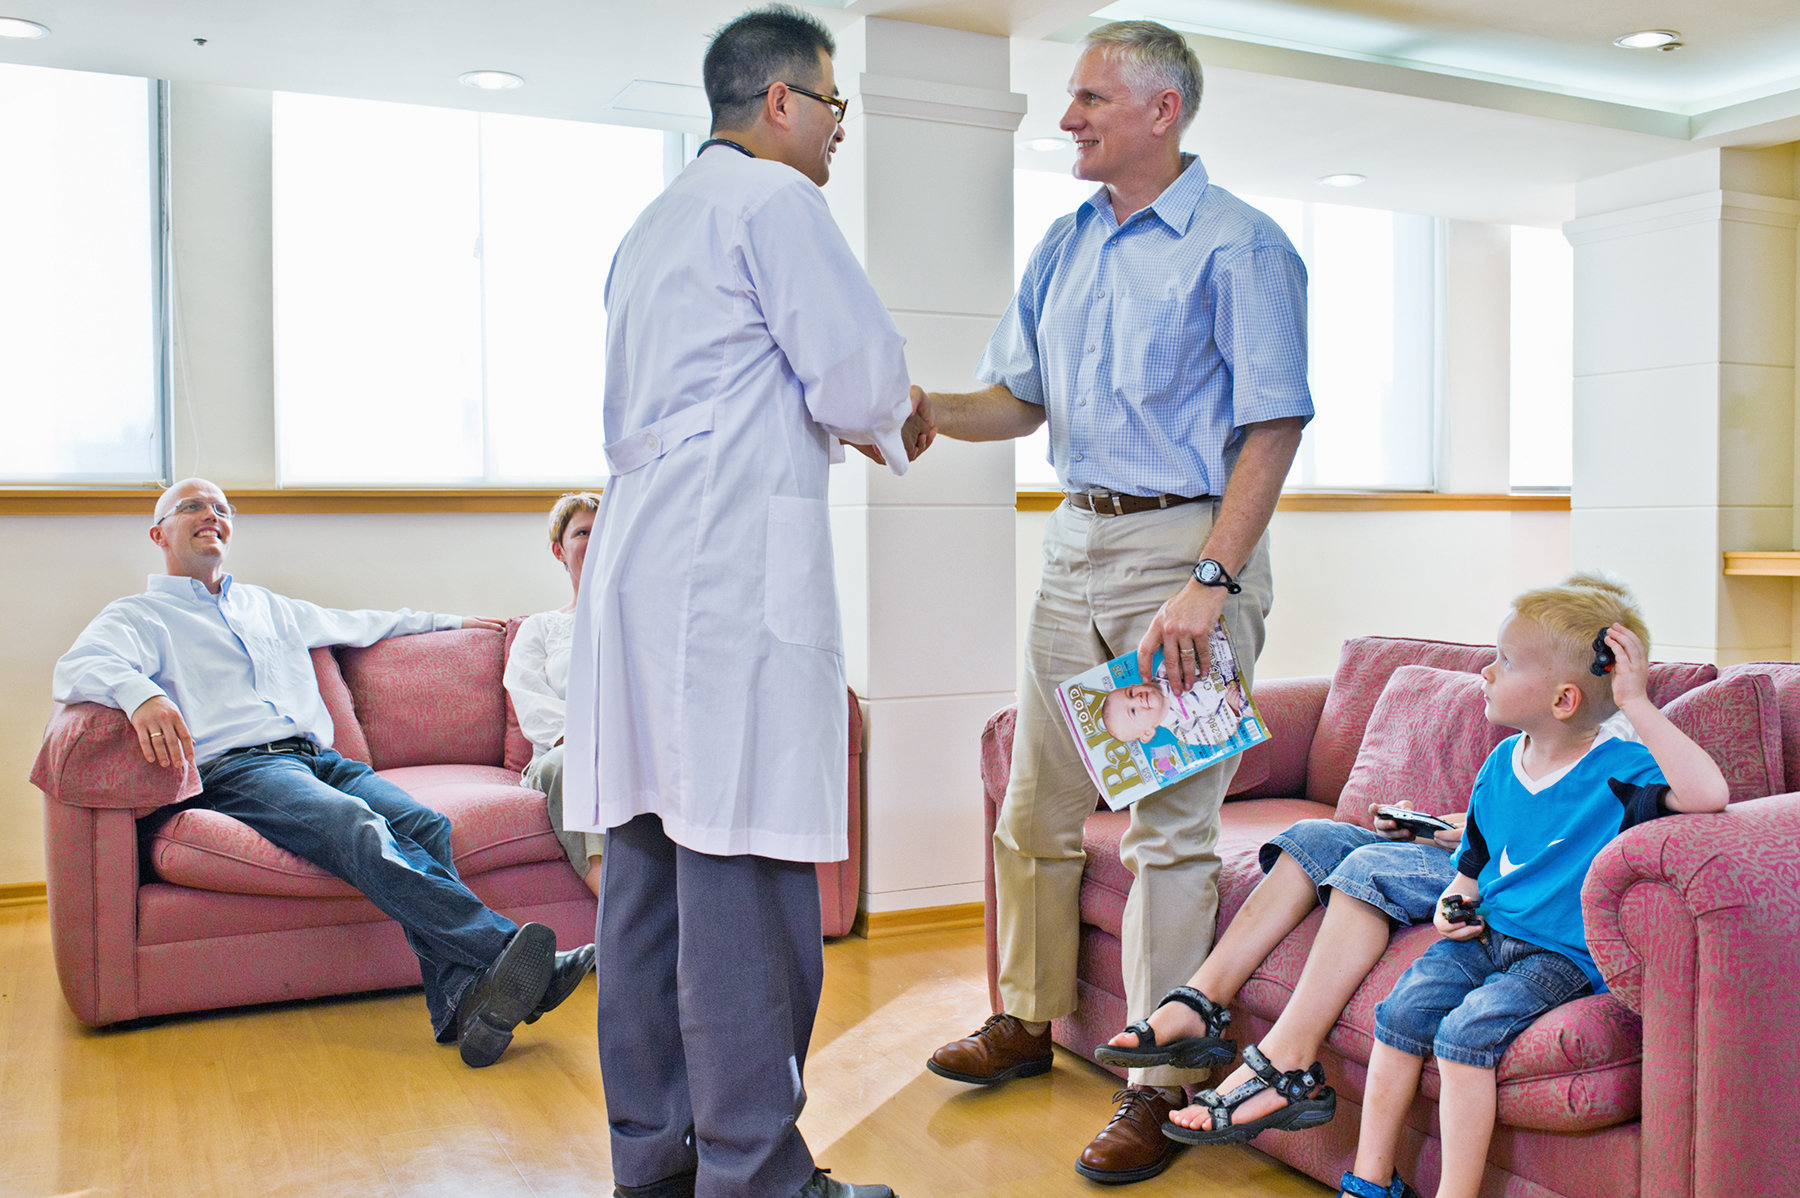 Doctor greeting patients in International Health Services Center at Kuang Tien General Hospital, Shalu, Taichung, Taiwan